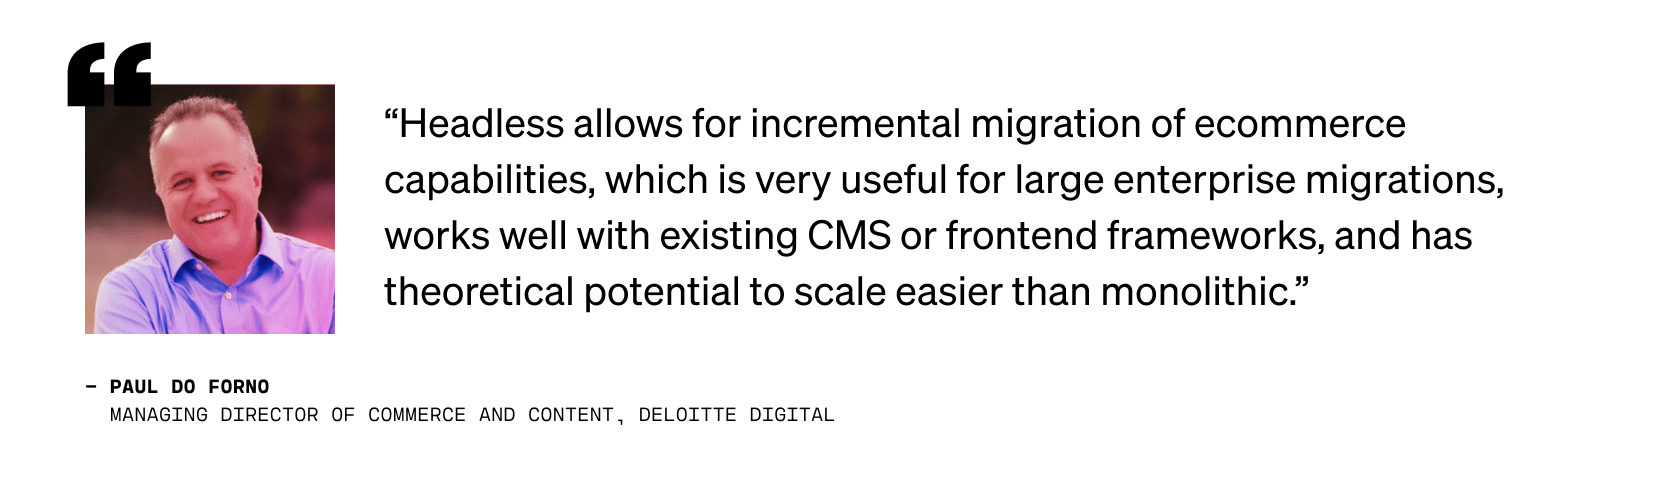 Quote from Paul Do Foro, Managing Director of Commerce and Content, Deloitte Digital